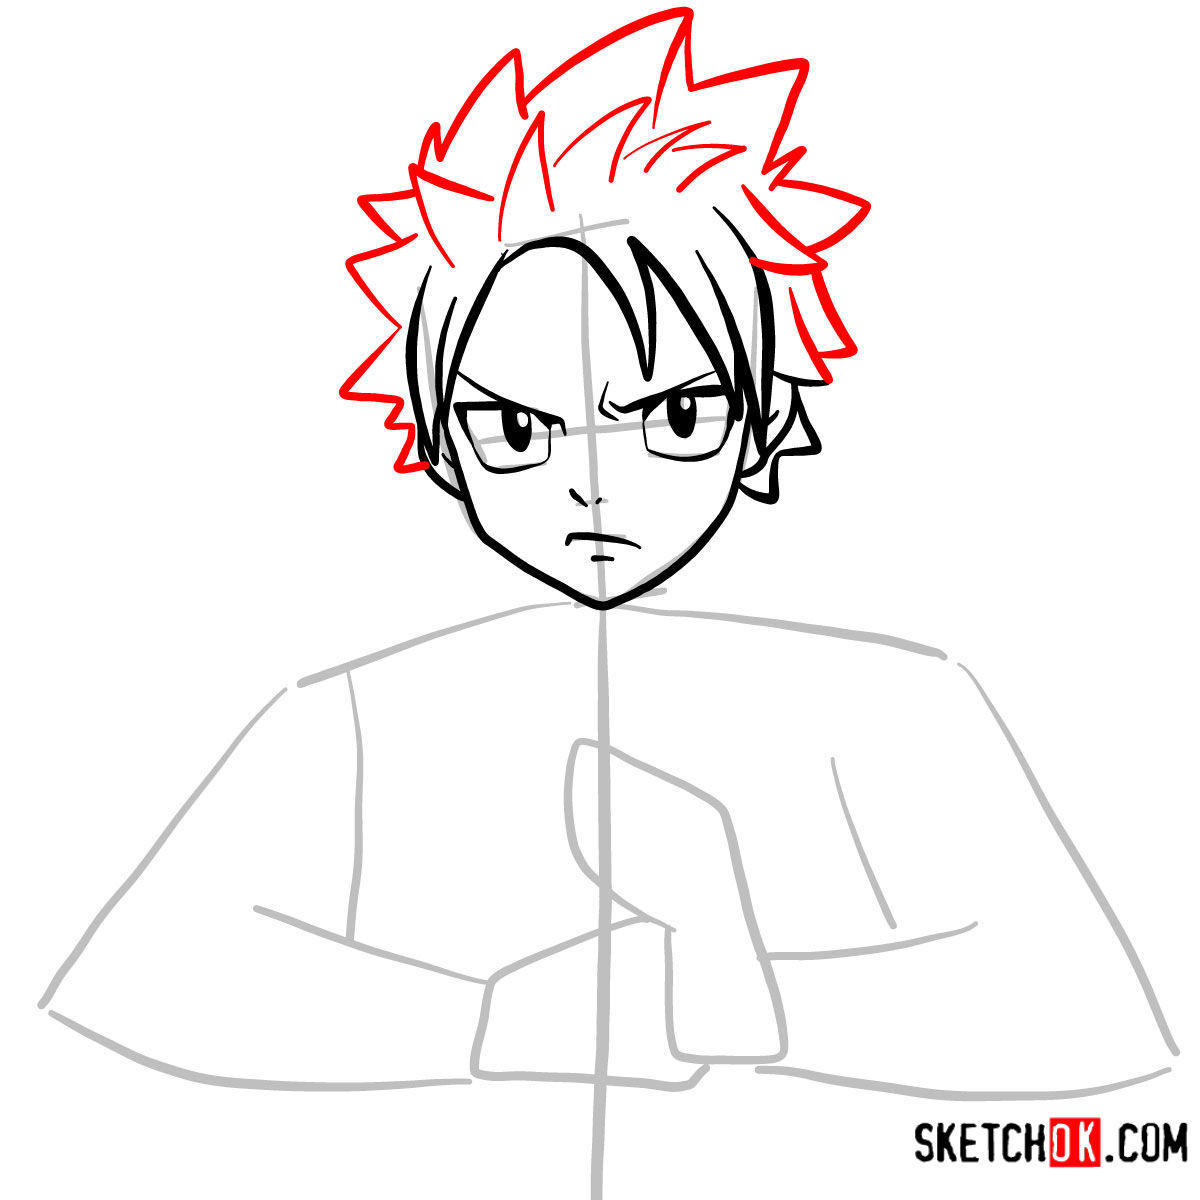 How to draw Natsu Dragneel's face | Fairy Tail - step 05